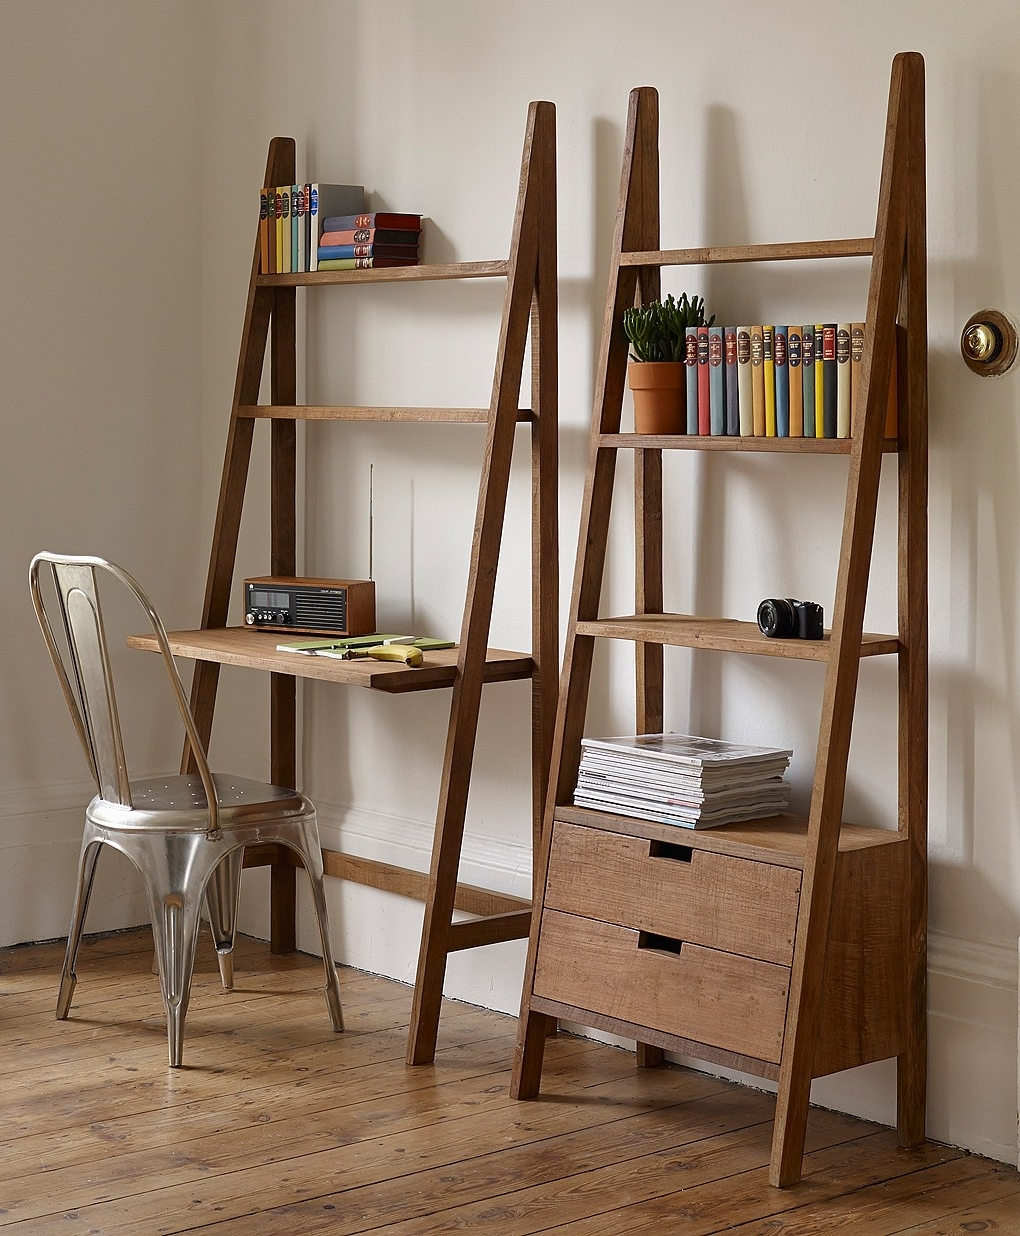 Ladder Bookcases With Drawers Regarding Current Sumatra Ladder Design Desk (View 5 of 15)